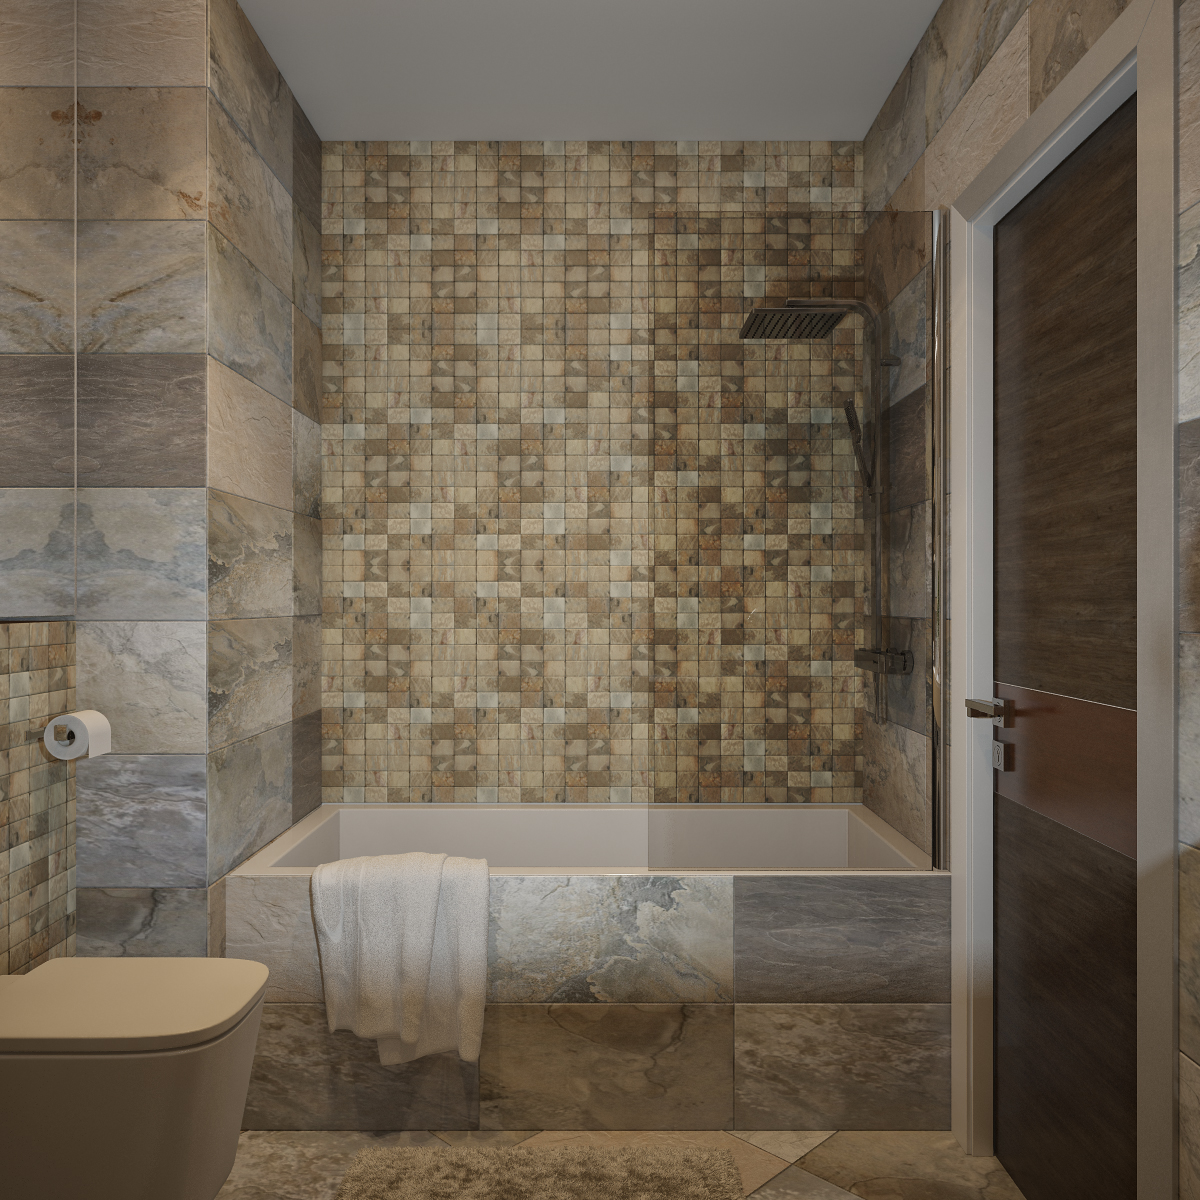 Bathroom Tile Ideas 2013 30 cool ideas and pictures of natural stone bathroom mosaic tiles